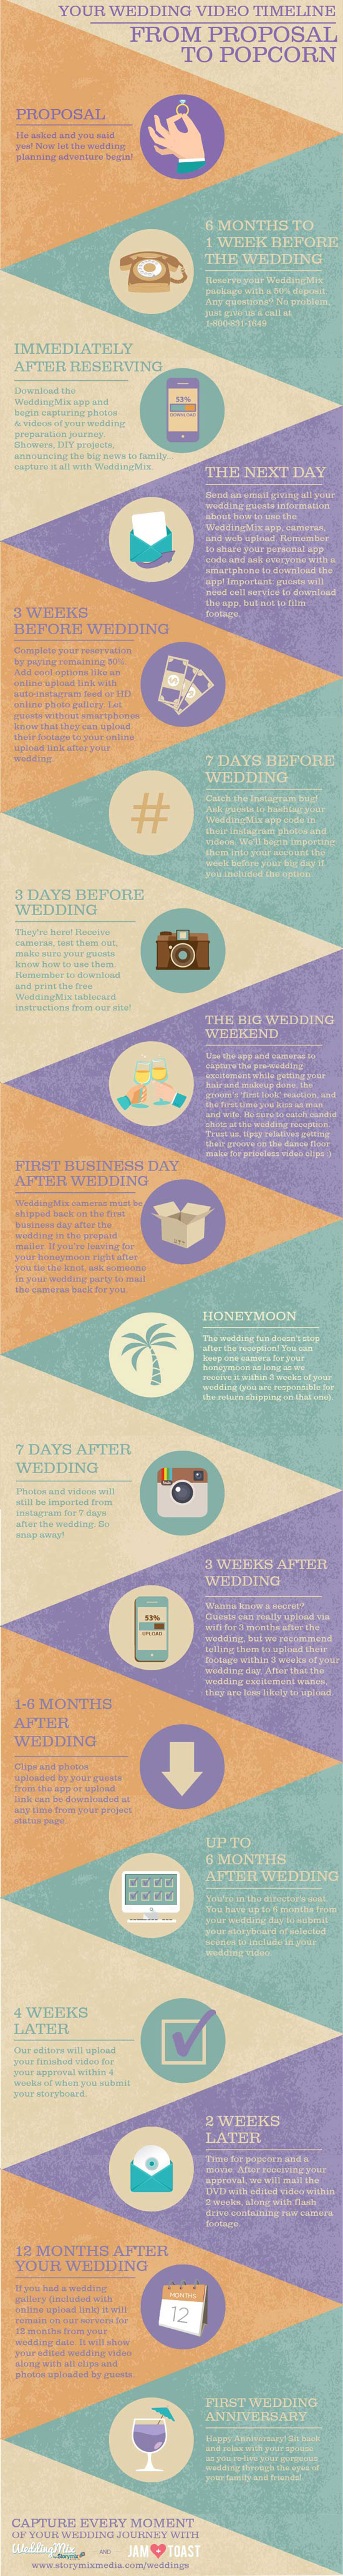 wedding-timeline-infographic5-web.jpg